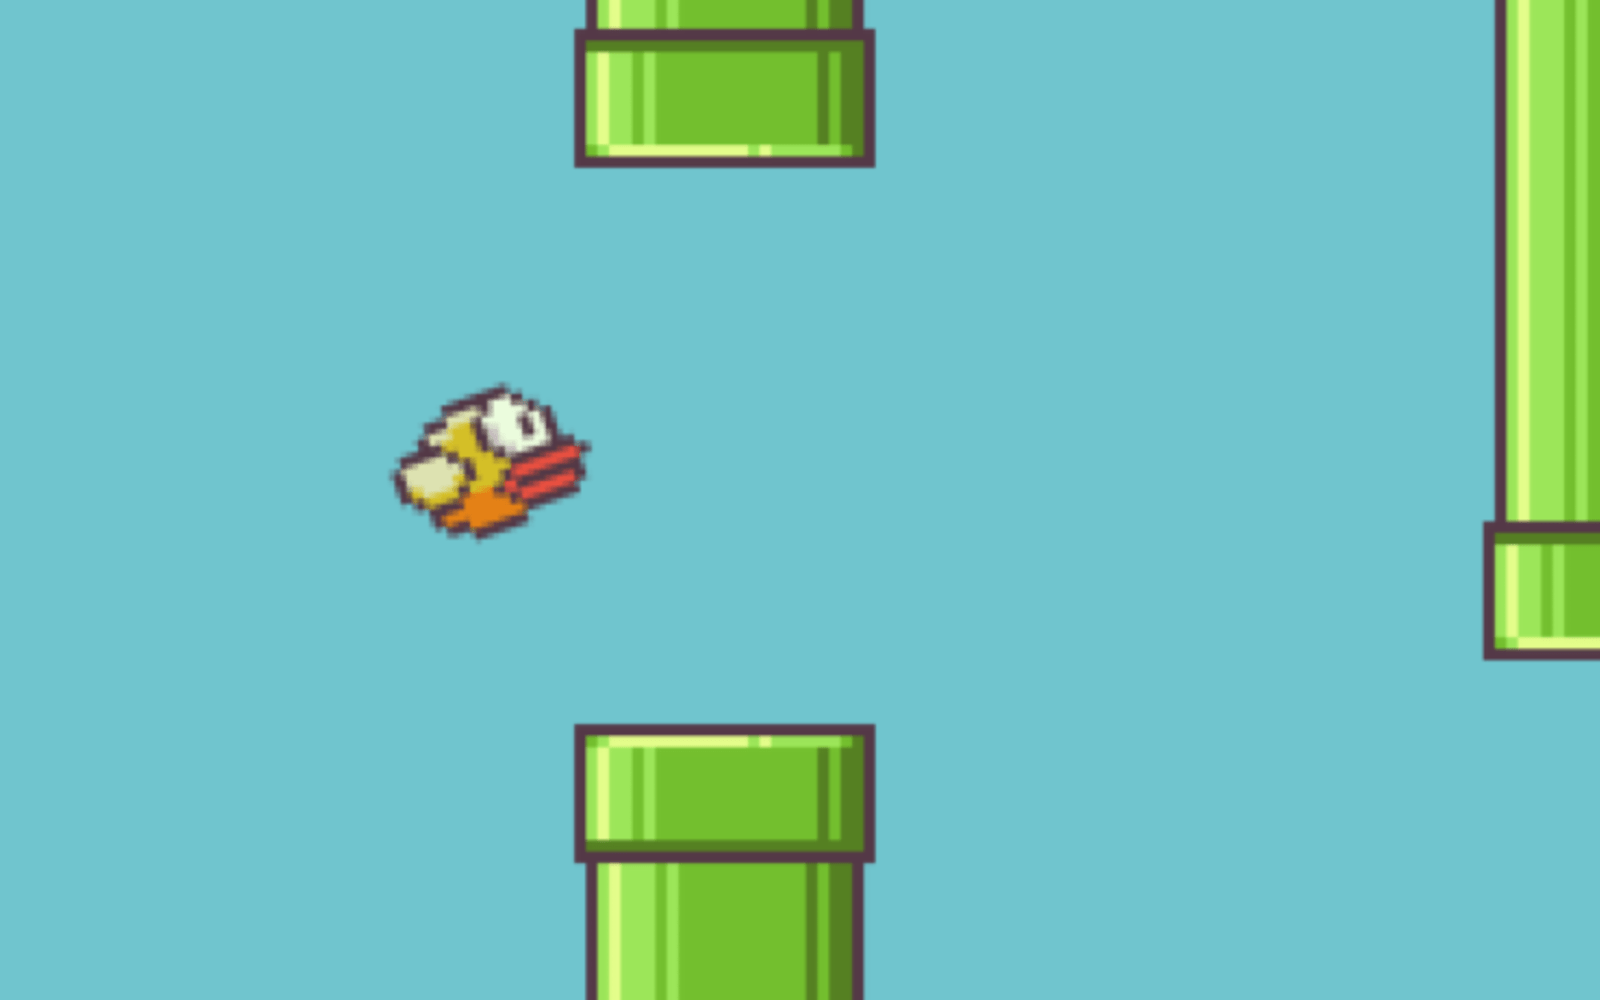 Flappy Bird creator promises to remove popular game from App Store by tomorrow